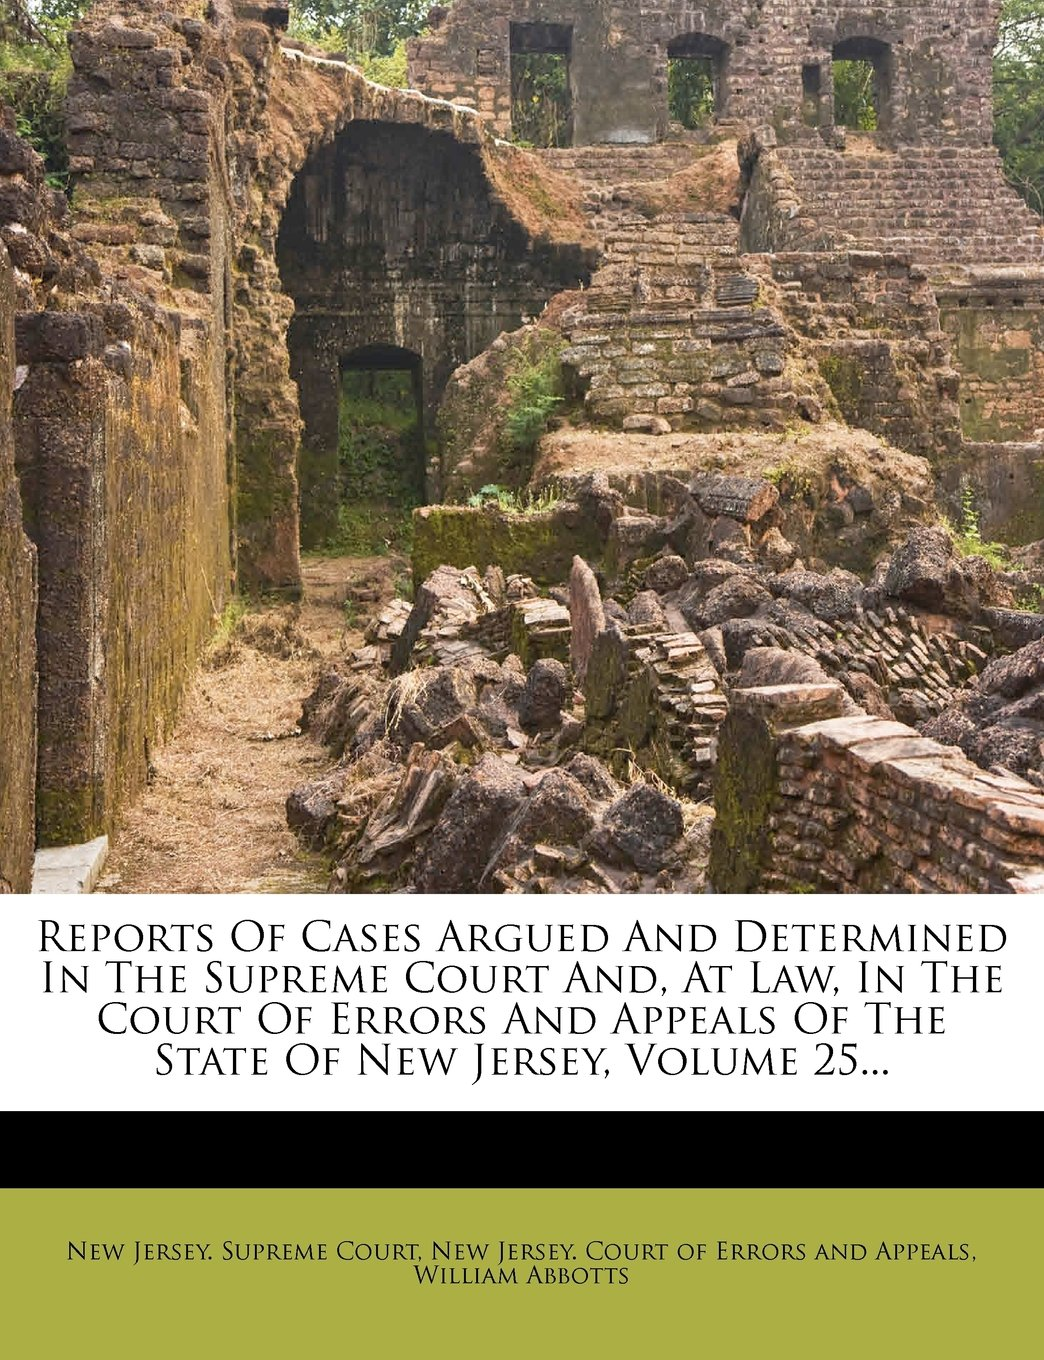 Download Reports Of Cases Argued And Determined In The Supreme Court And, At Law, In The Court Of Errors And Appeals Of The State Of New Jersey, Volume 25... pdf